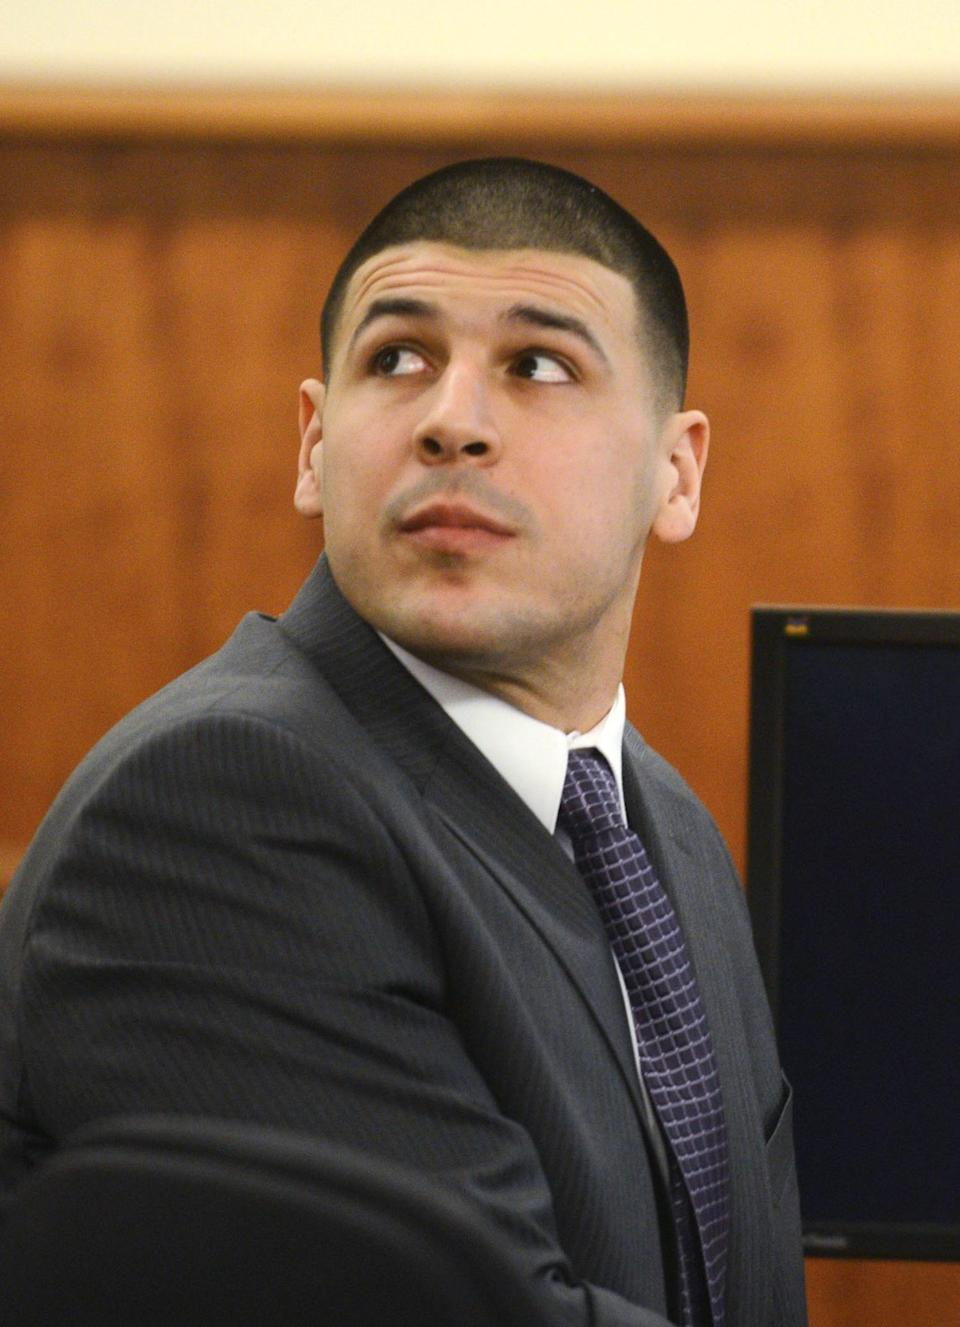 Former New England Patriots football player Aaron Hernandez sits during his murder trial at Bristol County Superior Court in Fall River, Massachusetts February 11, 2015. REUTERS/Ted Fitzgerald/Pool (UNITED STATES - Tags: CRIME LAW SPORT FOOTBALL)